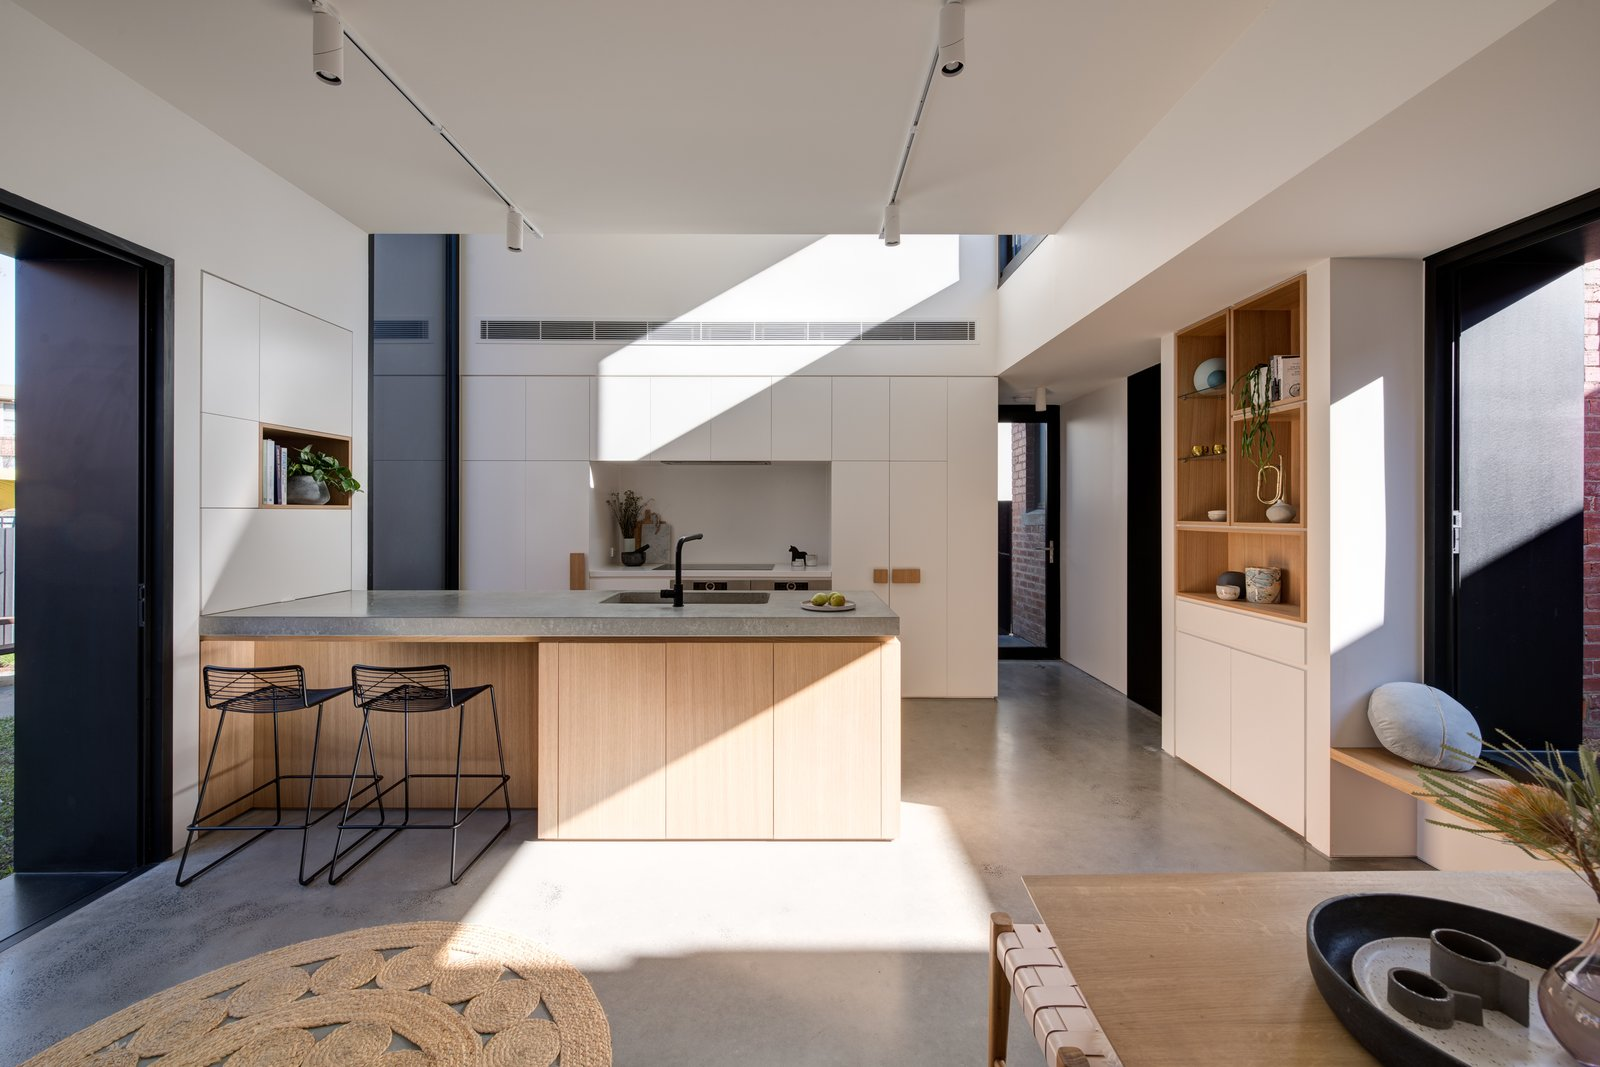 Tetris Extension kitchen with polished concrete floor